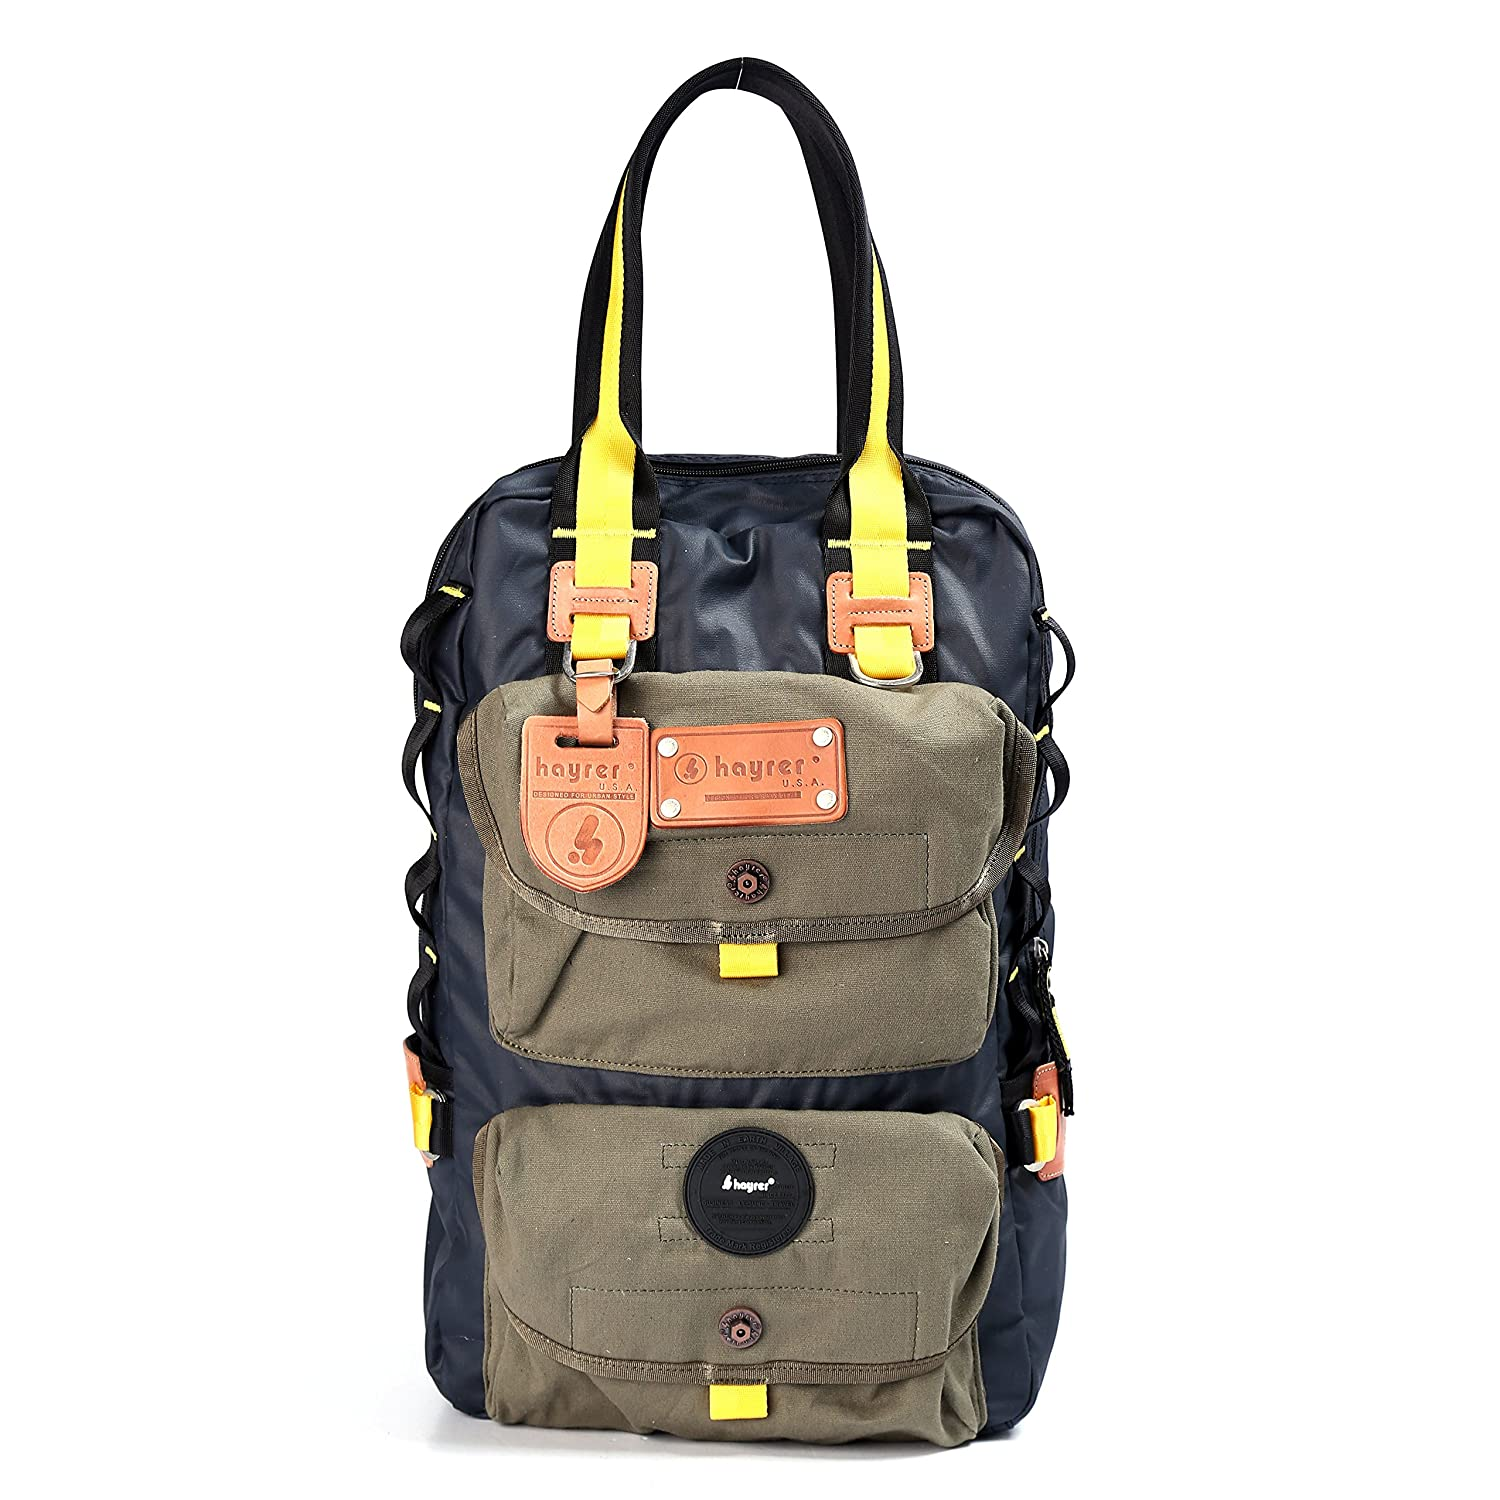 Hayrer Canvas Travel Hiking Dual-use Backpack Daypack 66338